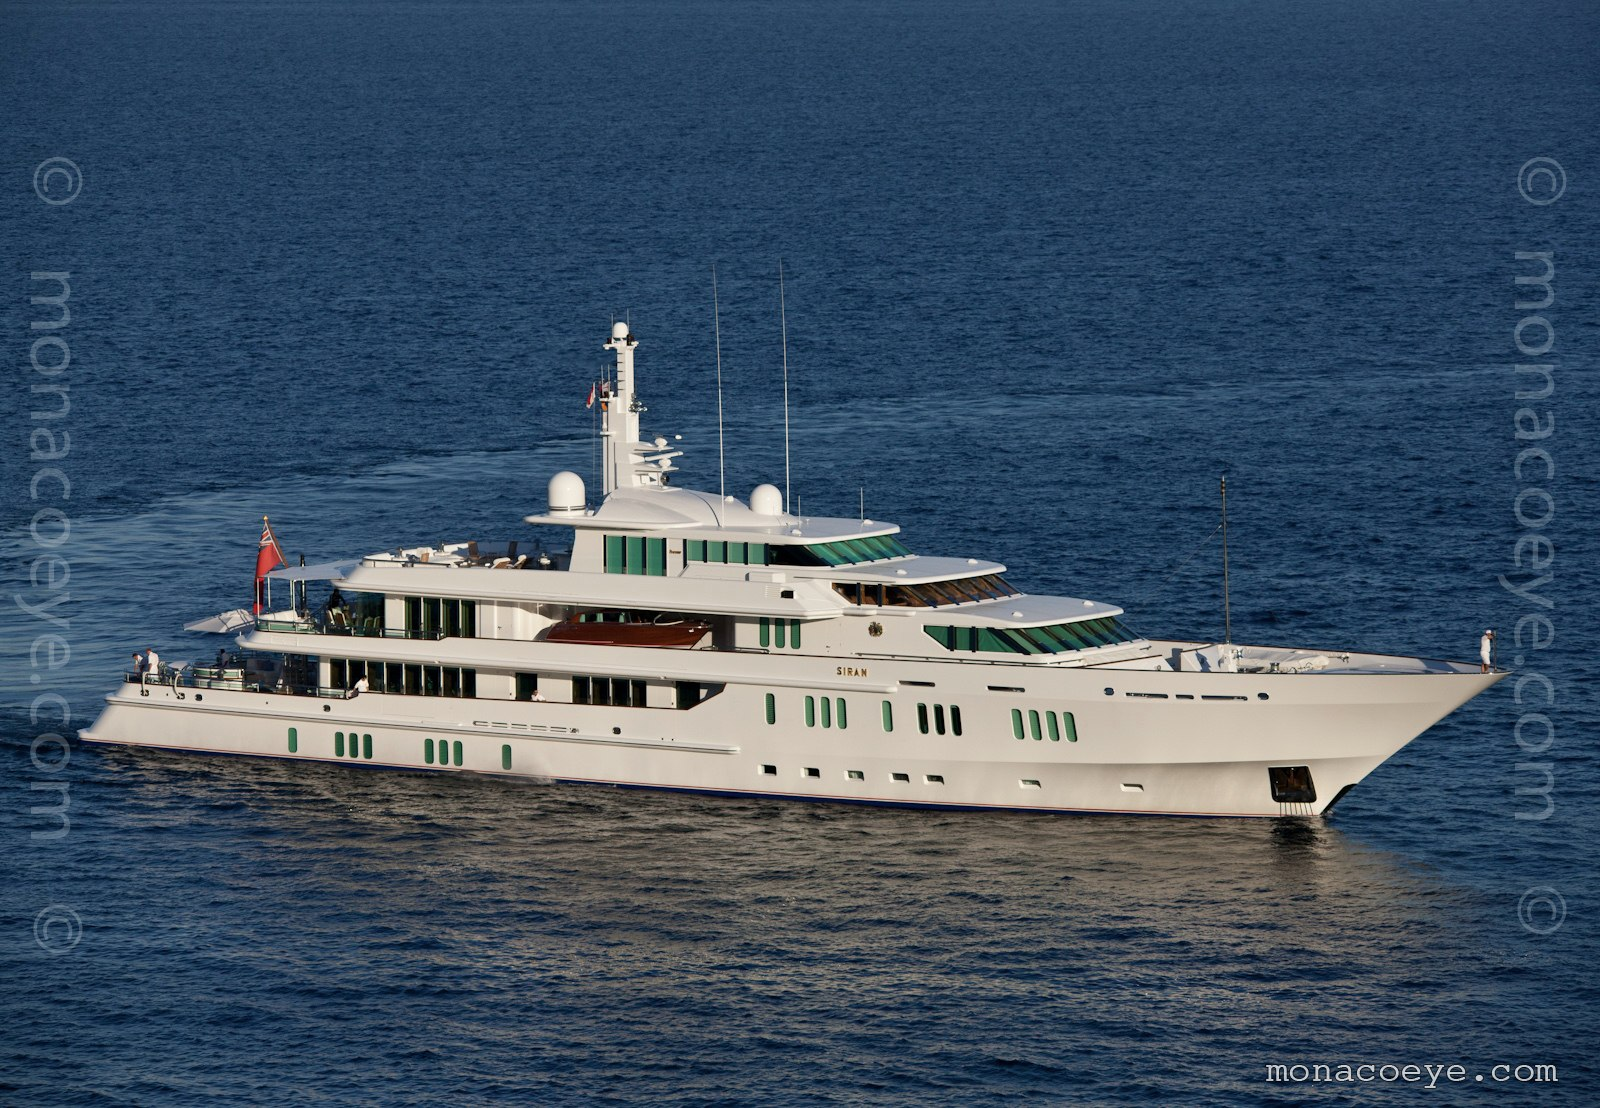 Siran, 1992 design from Feadship and Jon Bannenberg. Lengthened and heightened in 2007.